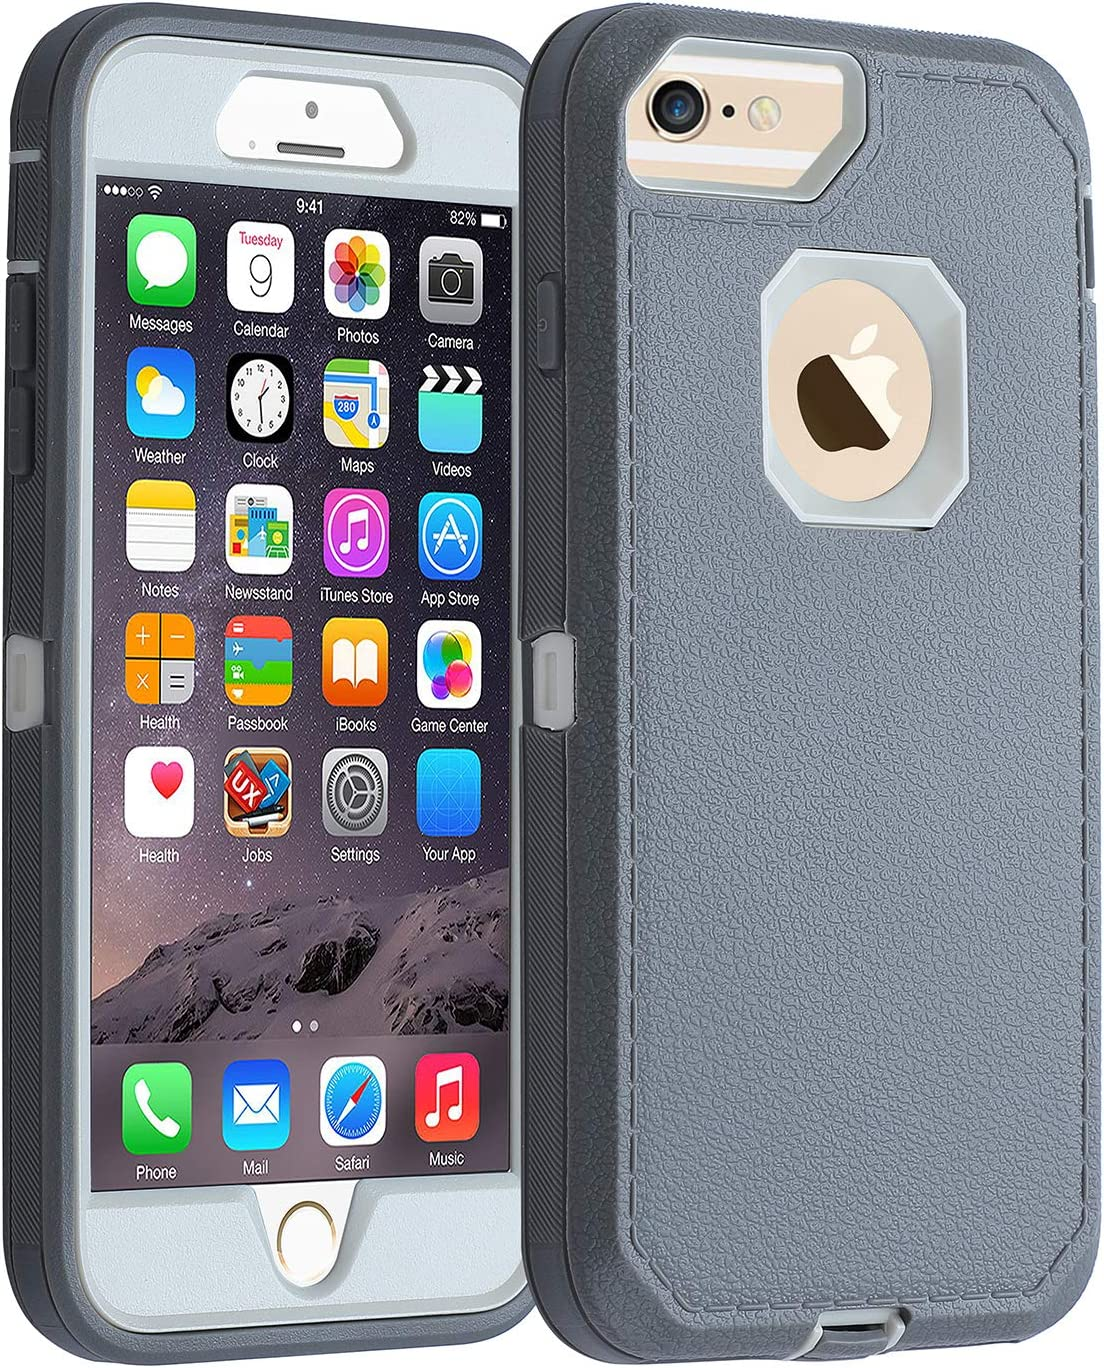 Co-Goldguard Case iPhone 7 Heavy Duty iPhone 8 Case Durable 3 in 1 Hard Cover Dust-Proof Shockproof Drop-Proof Scratch-Resistant Shell (Gray White)